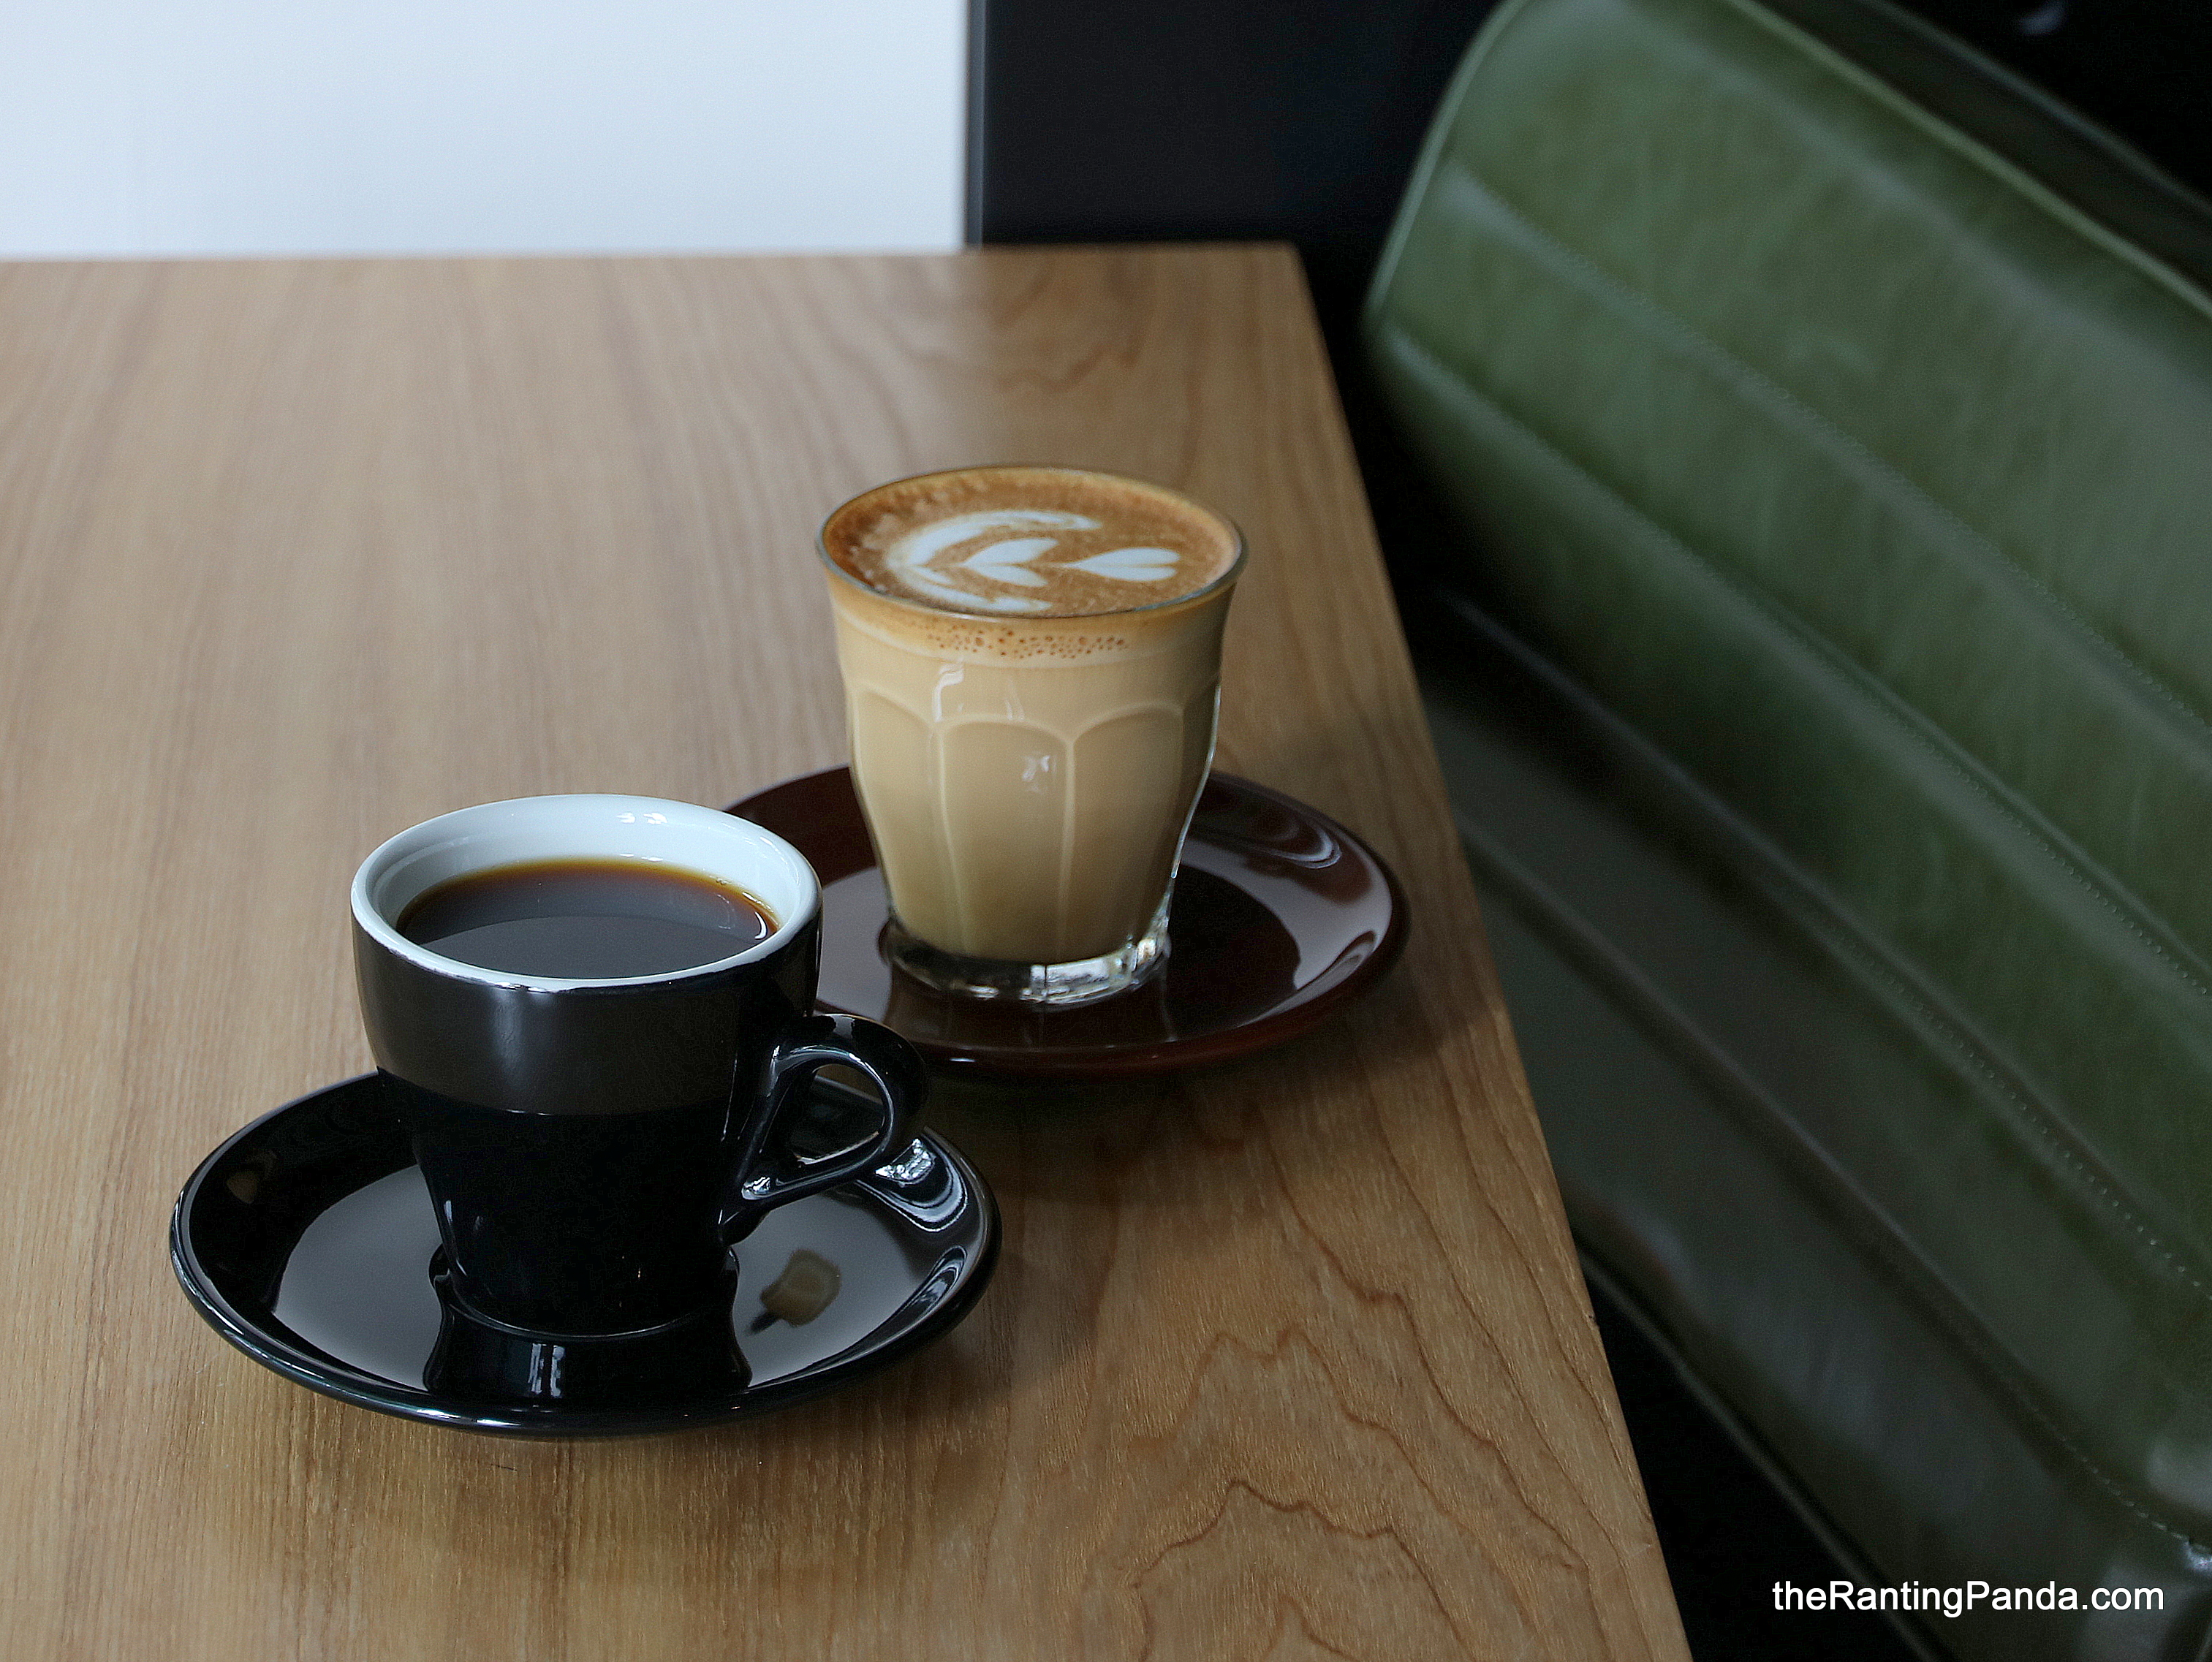 Food Review: Liberty Coffee Bar at Jalan Besar | Local Coffee Roaster (finally) opens Cafe & Retail Space